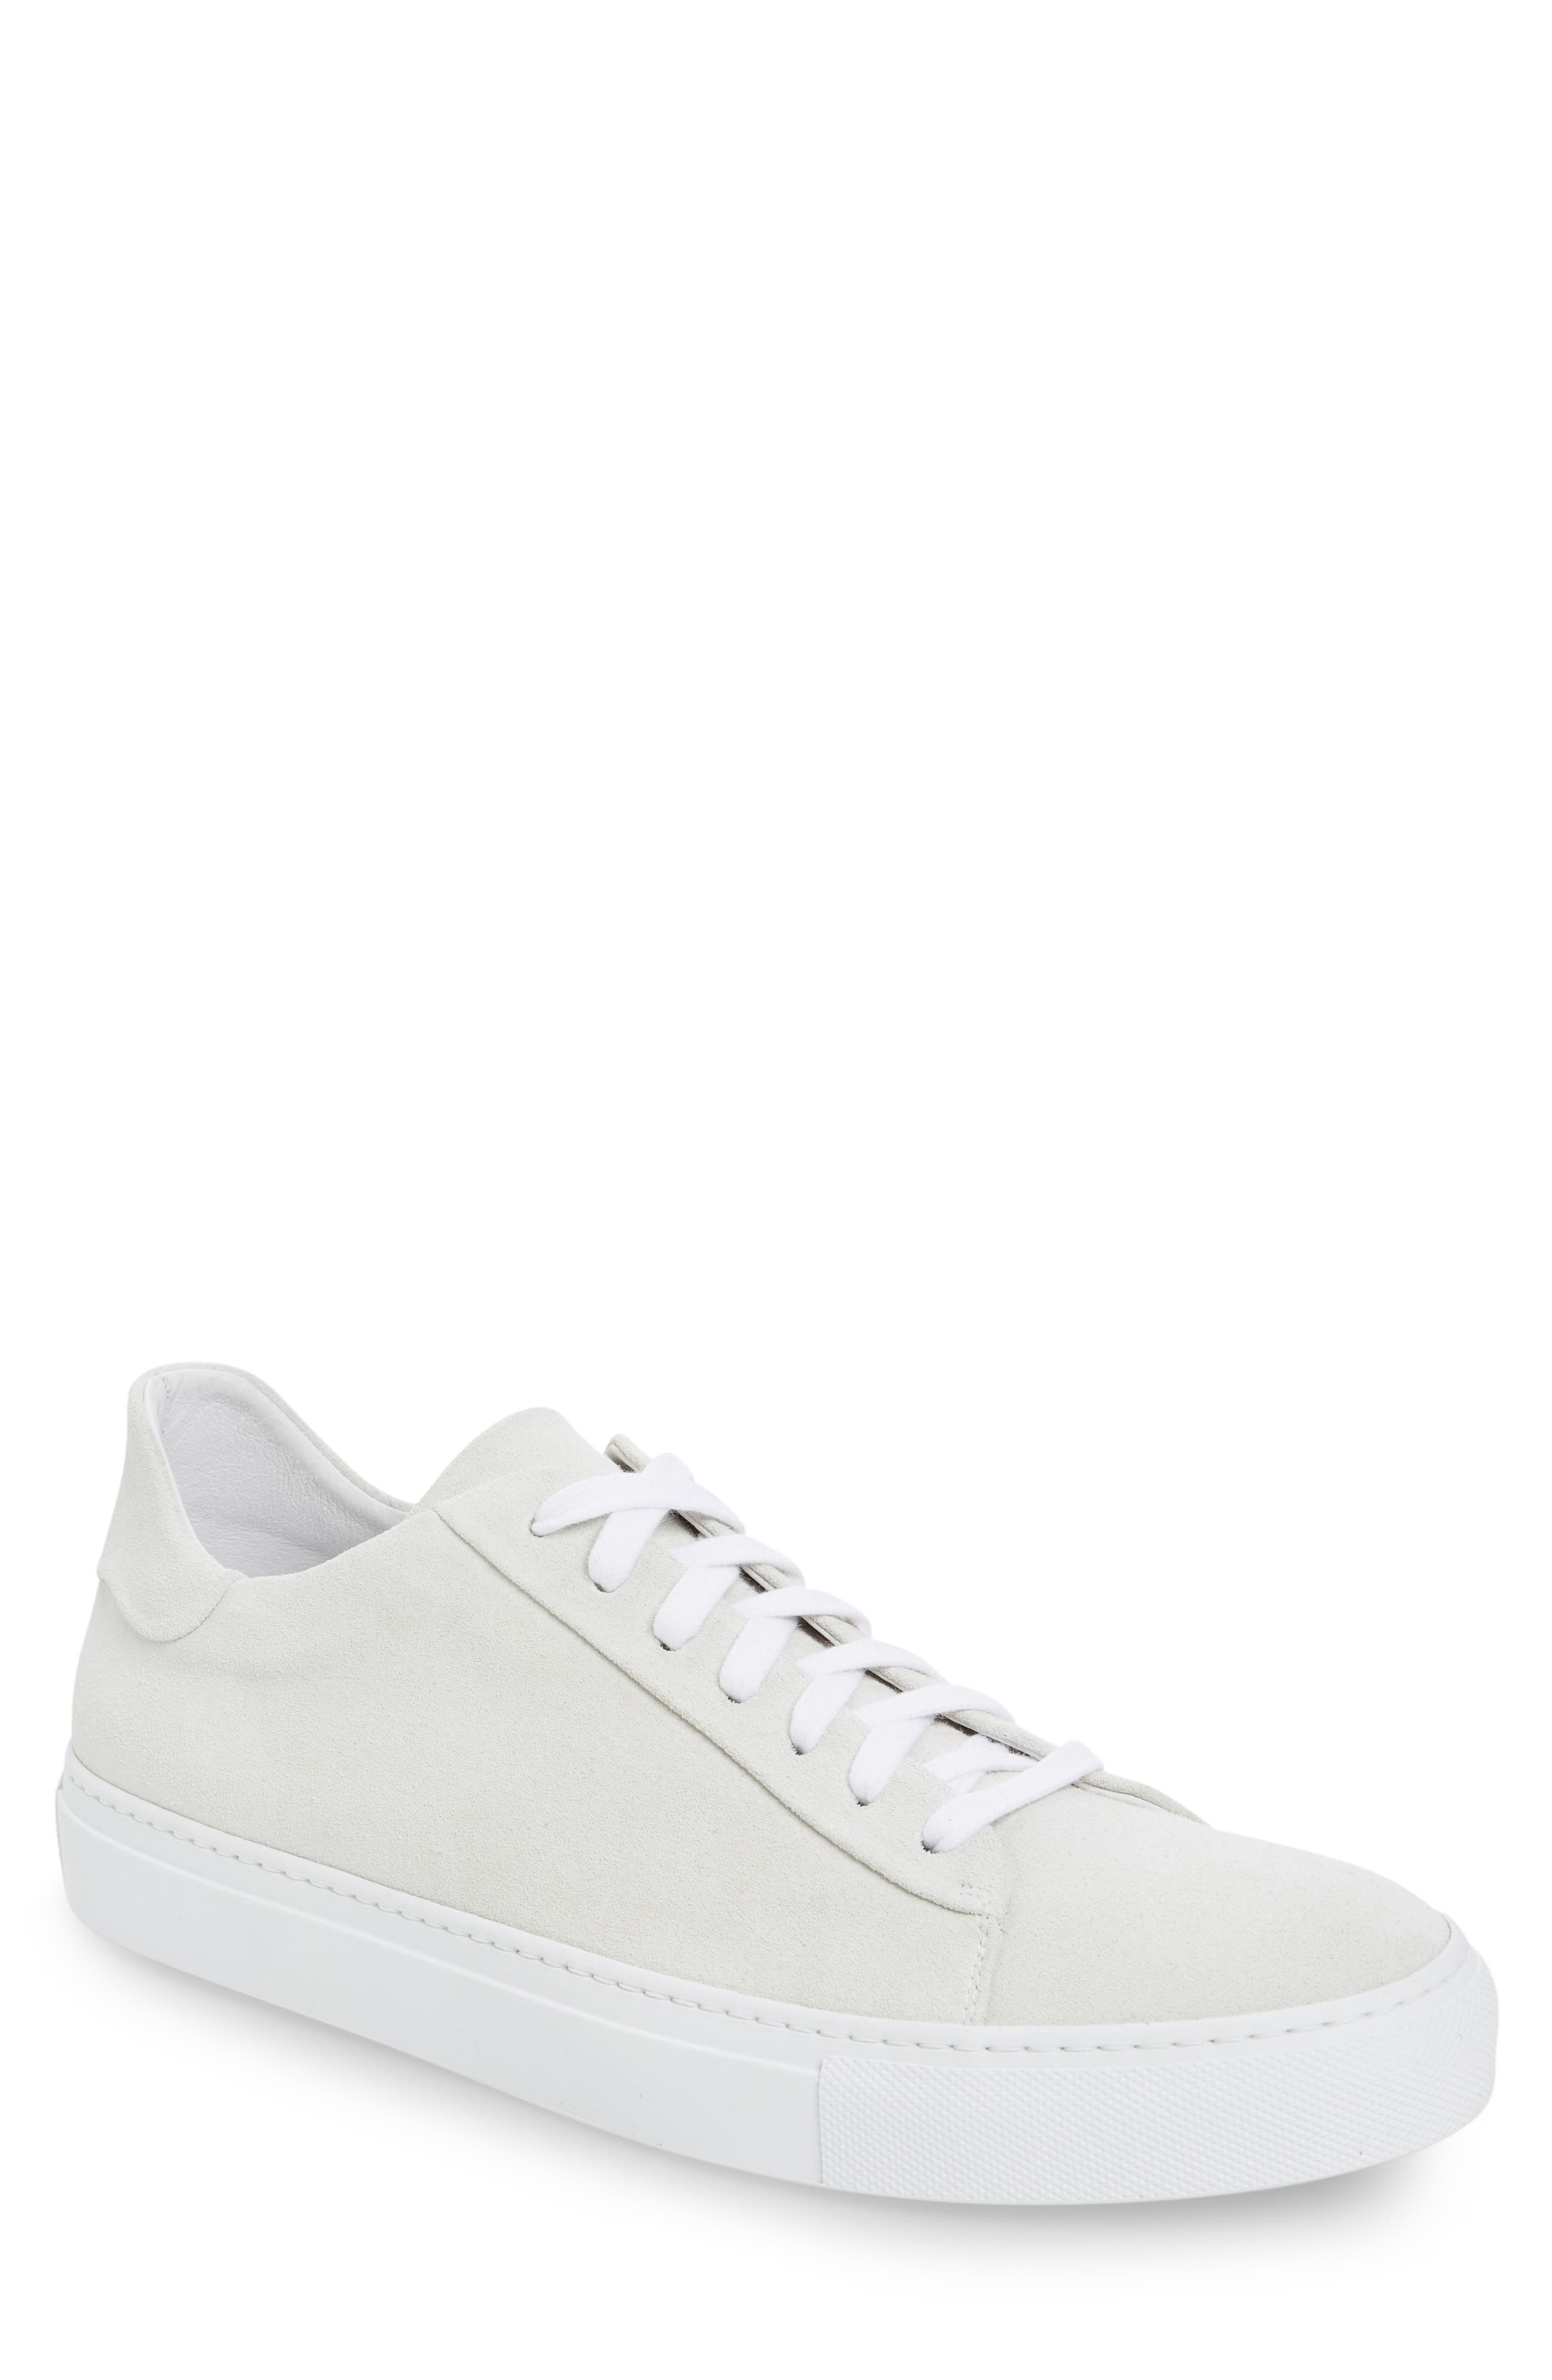 Court Sneaker,                             Main thumbnail 1, color,                             White Suede